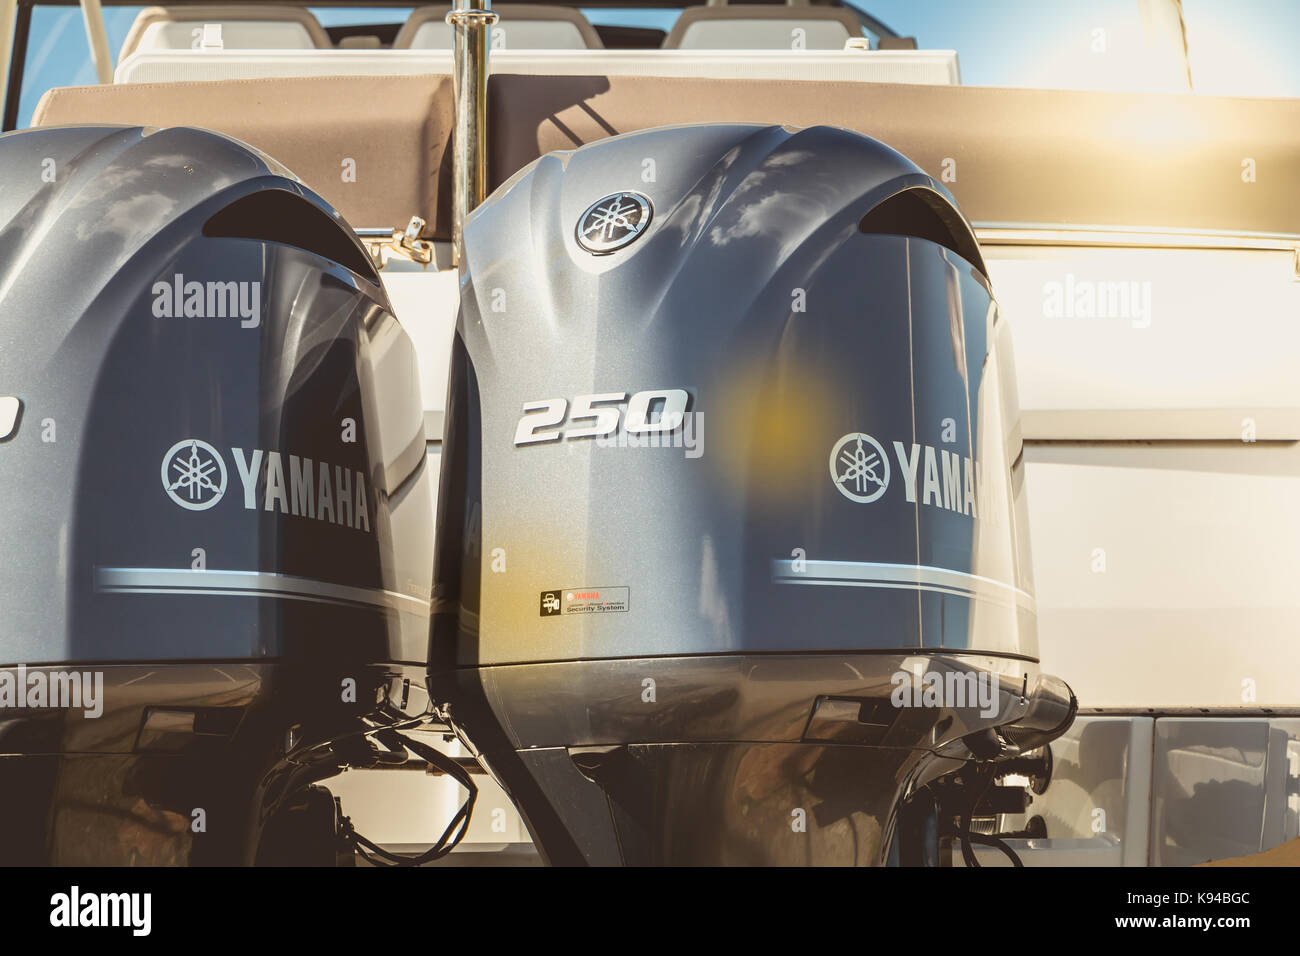 TALMONT SAINT HILAIRE, FRANCE - September 23, 2016 : close-up of the cowling of a couple of yamaha outboard motors - Stock Image